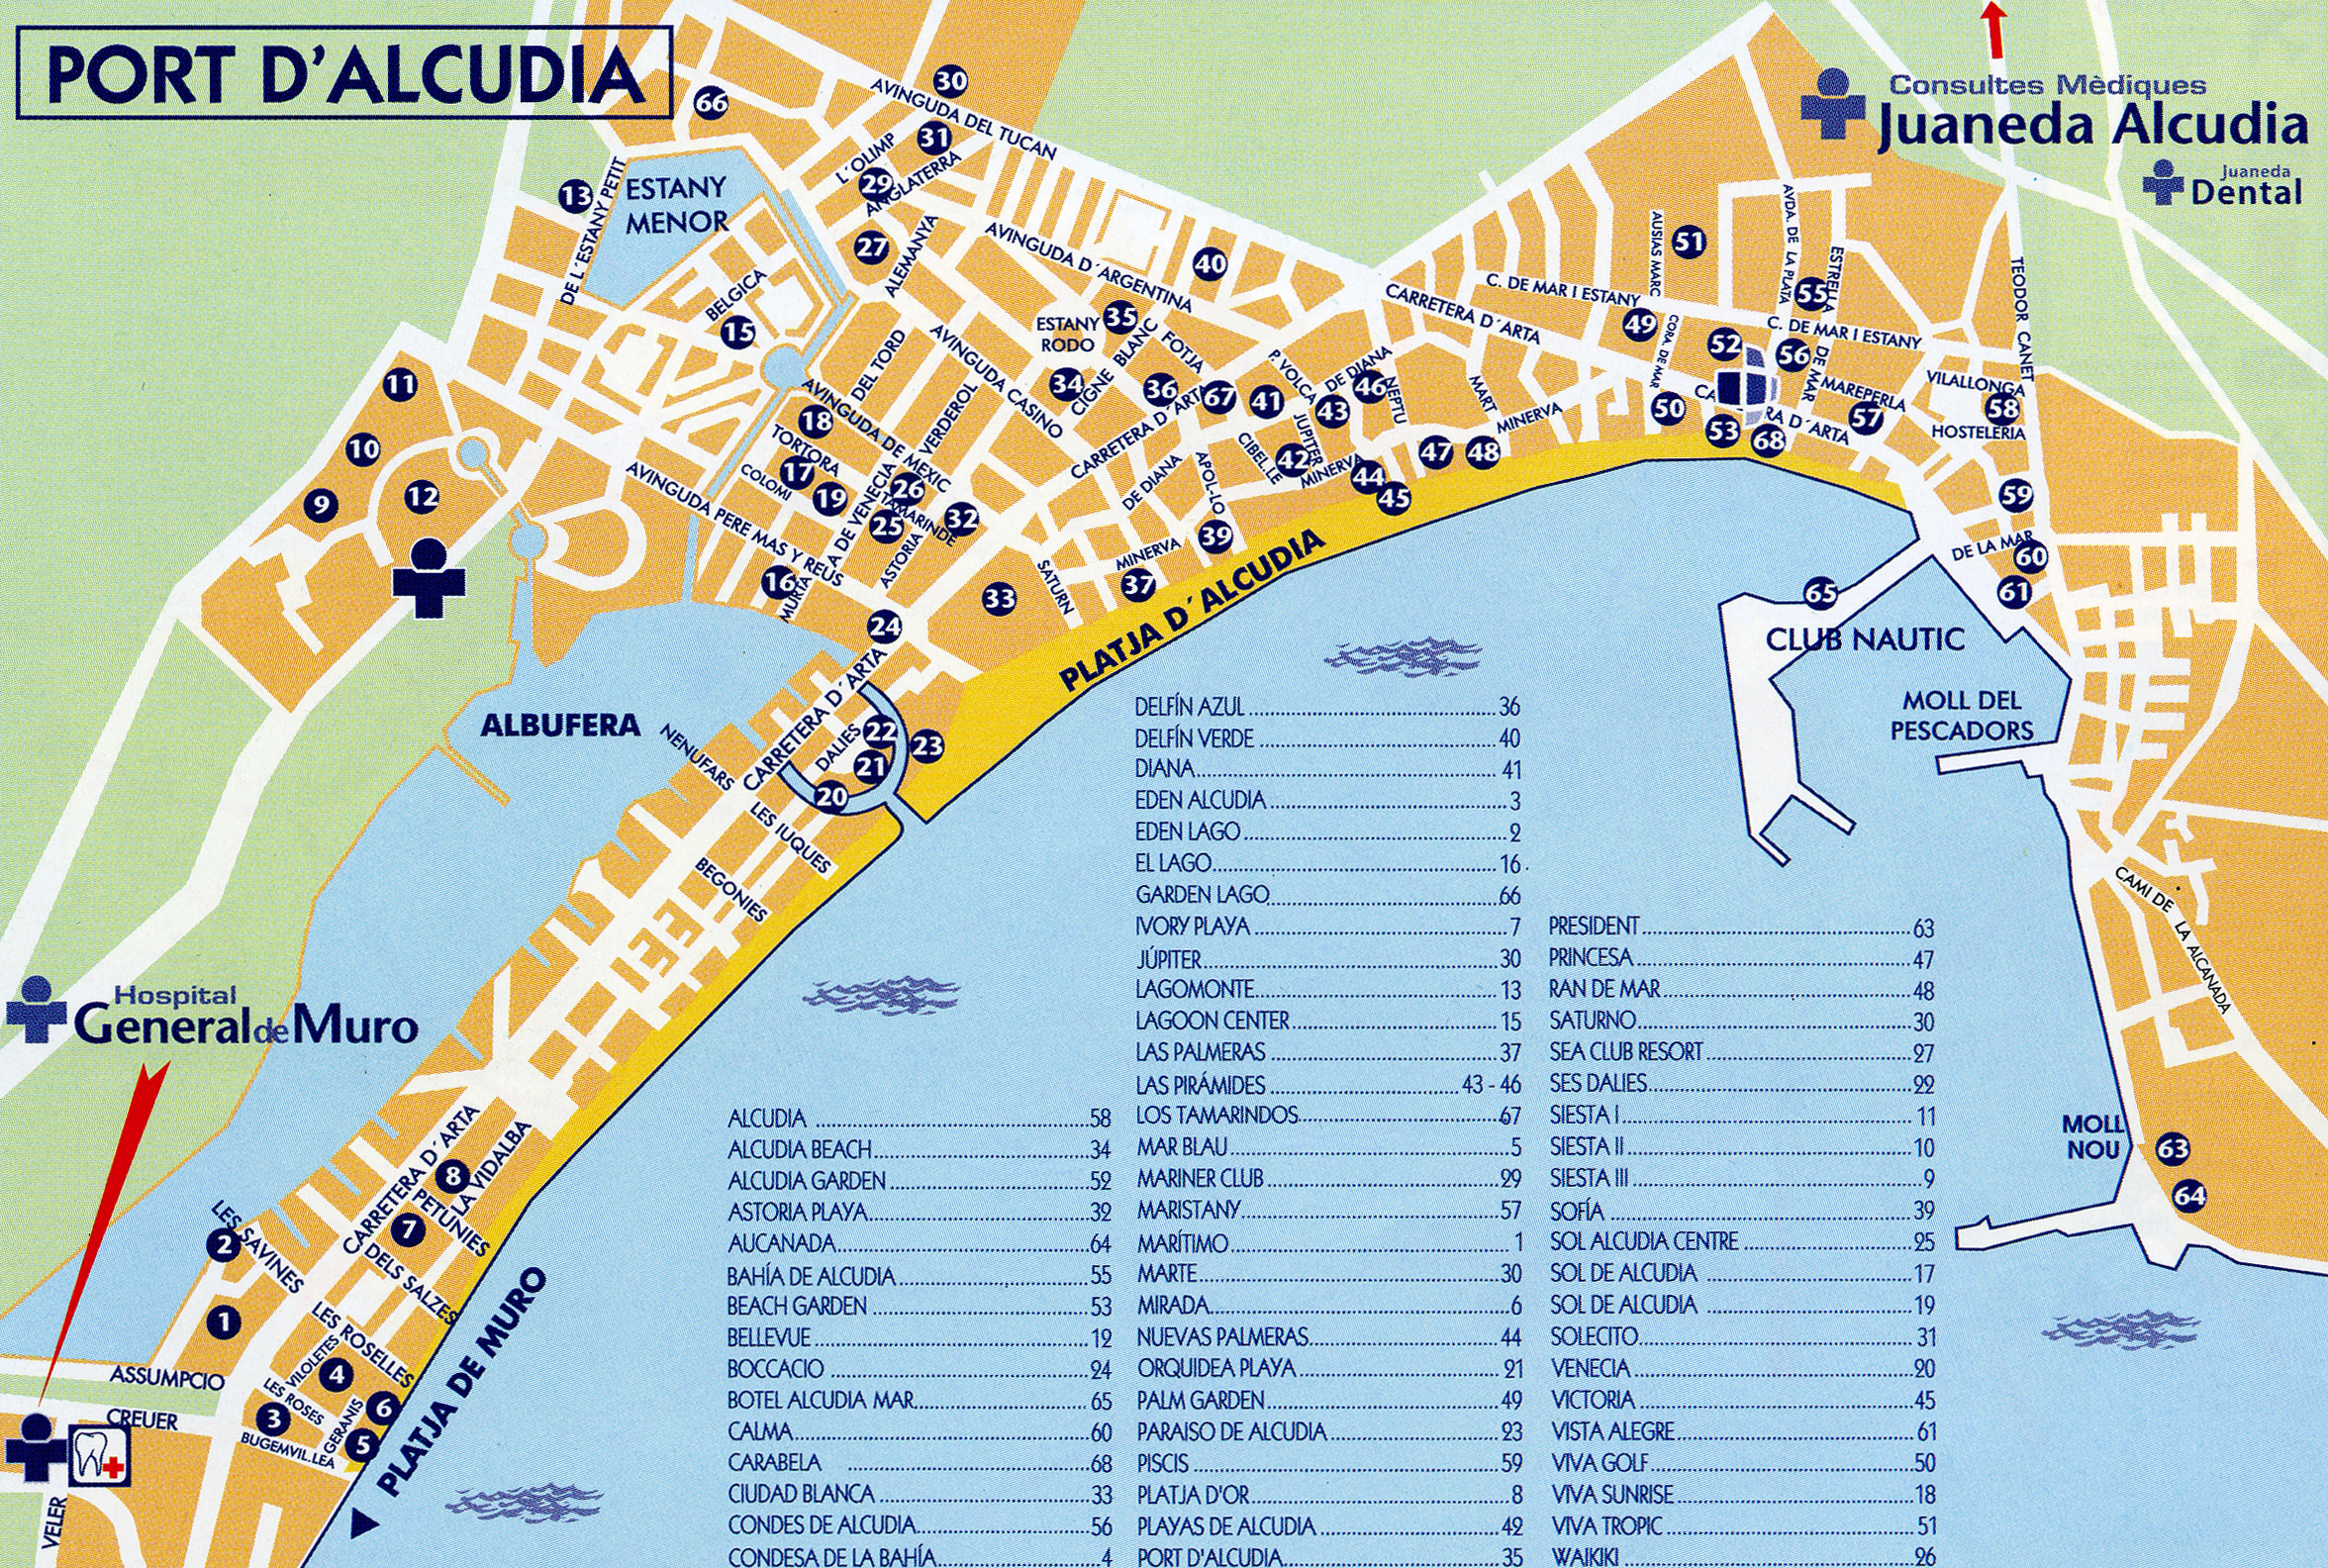 The village of Port dAlcudia in Majorca